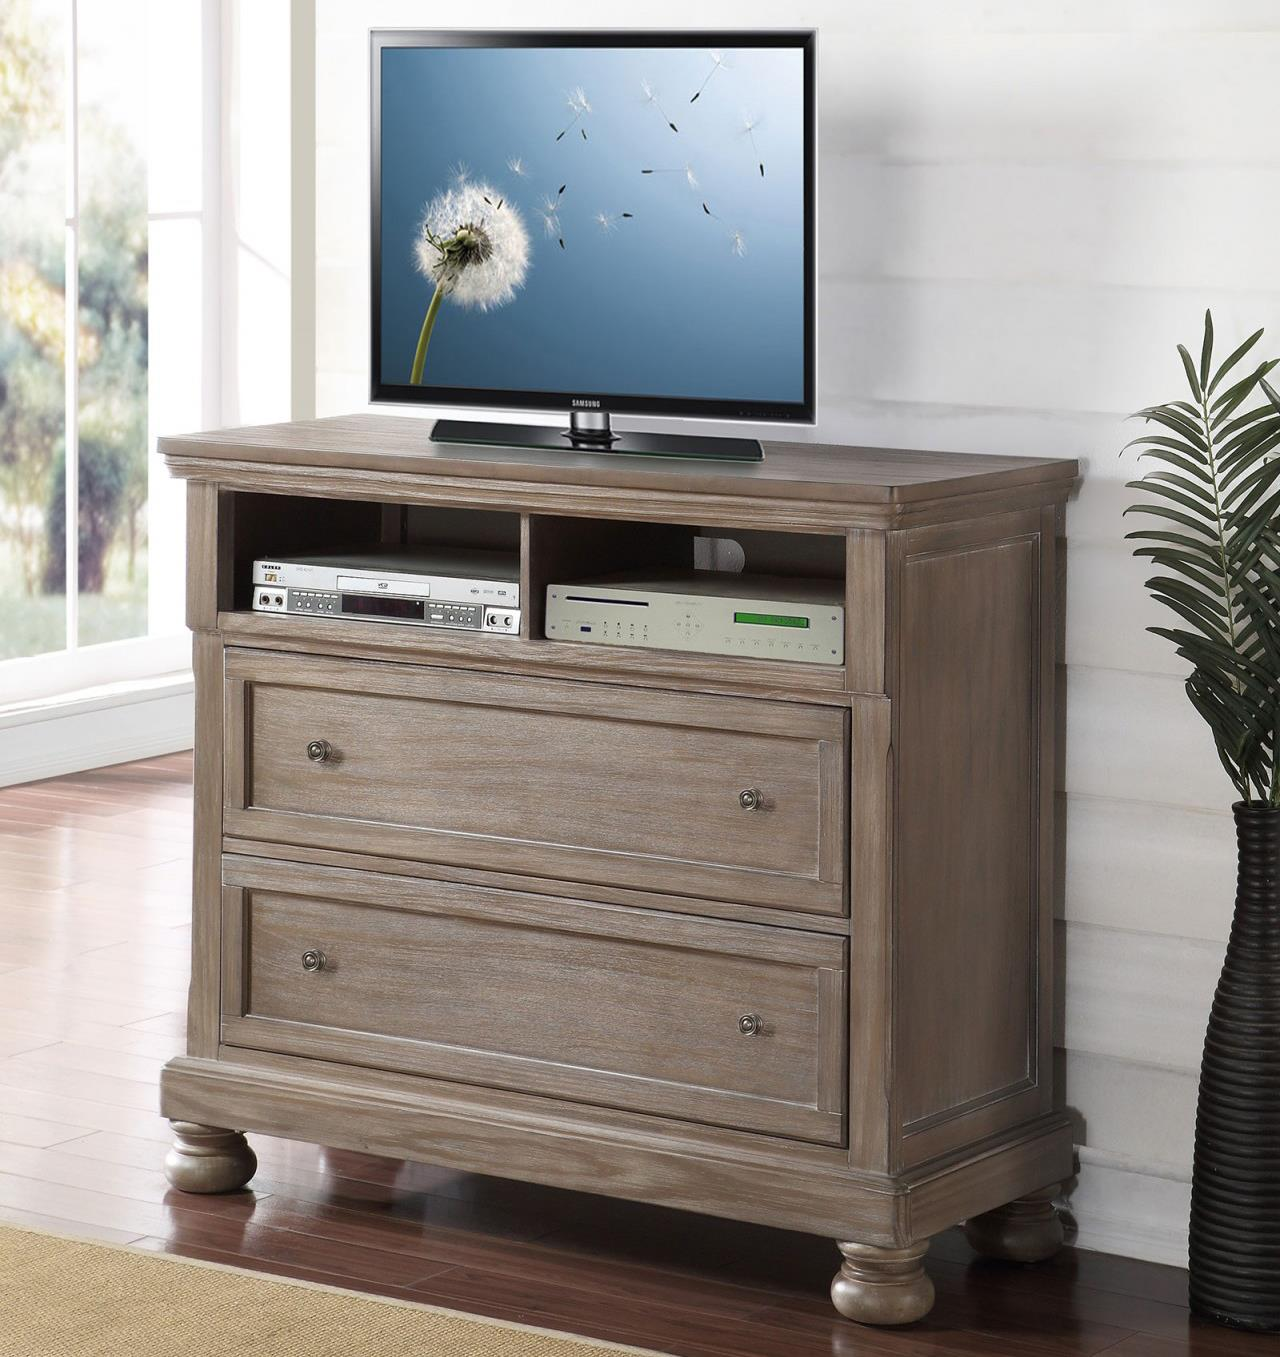 Allegra Media Console by New Classic at Carolina Direct